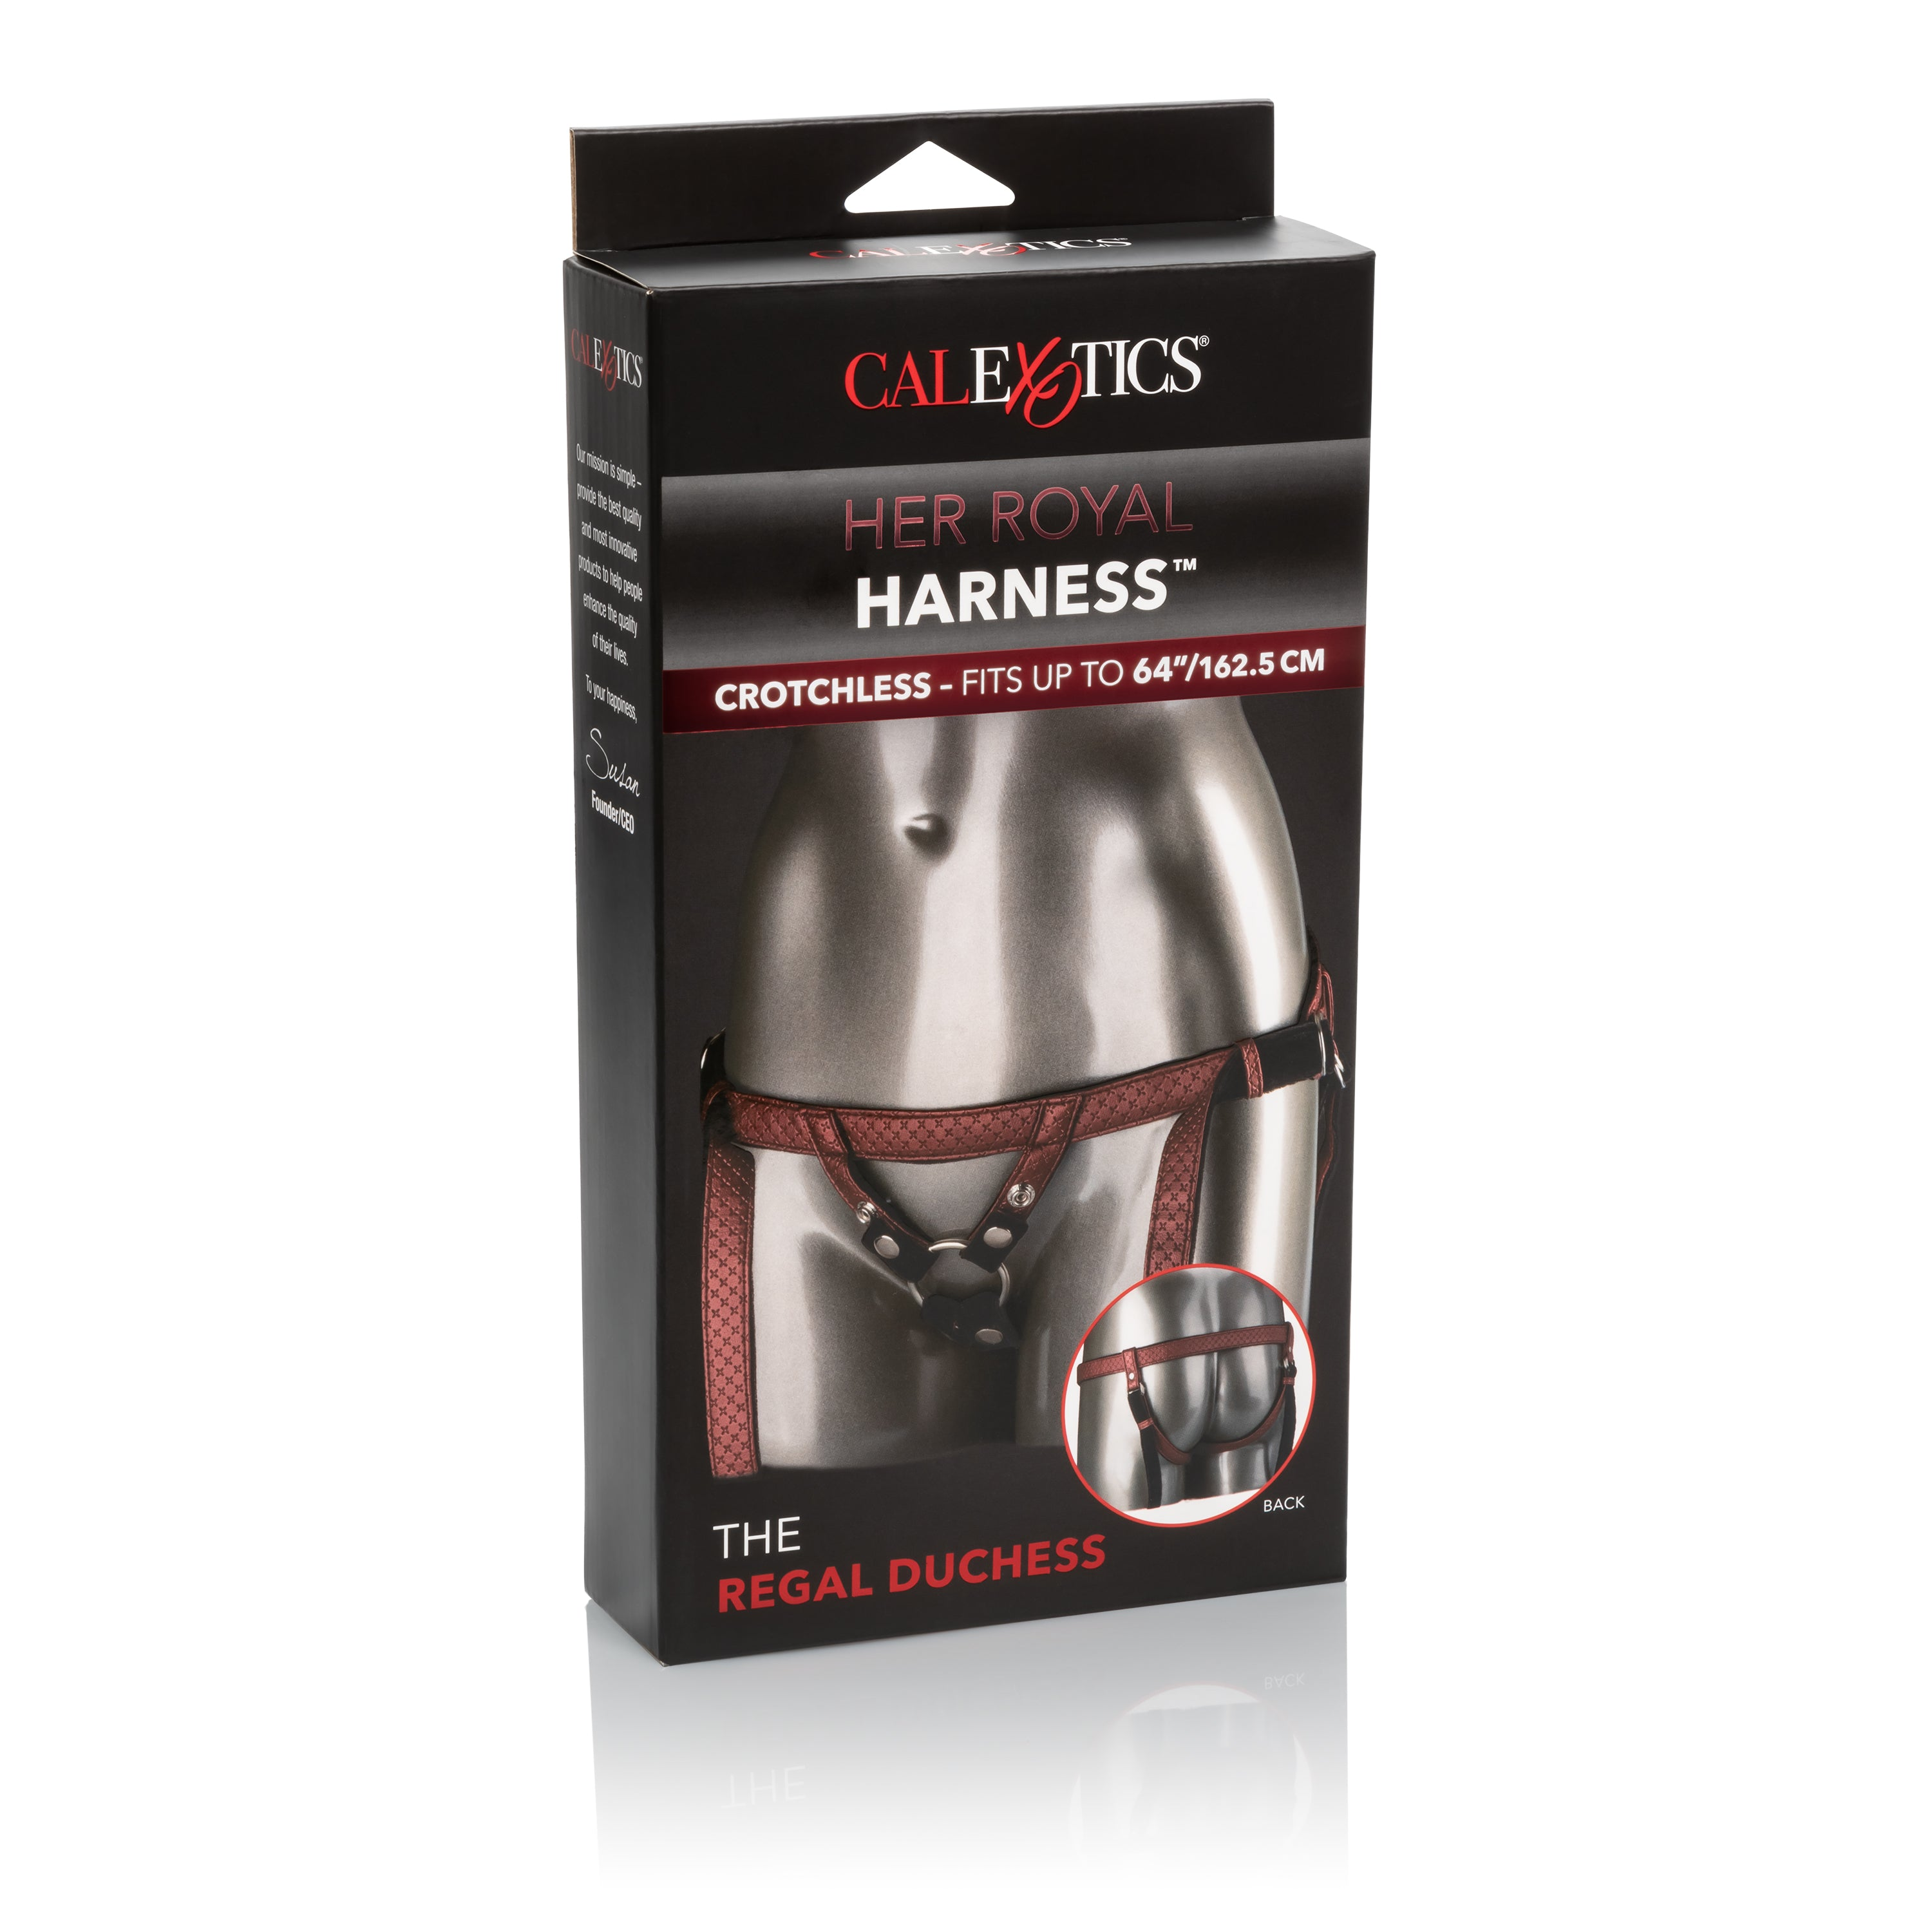 Her Royal Harness™ The Regal Duchess Strap-on Harness - Red box